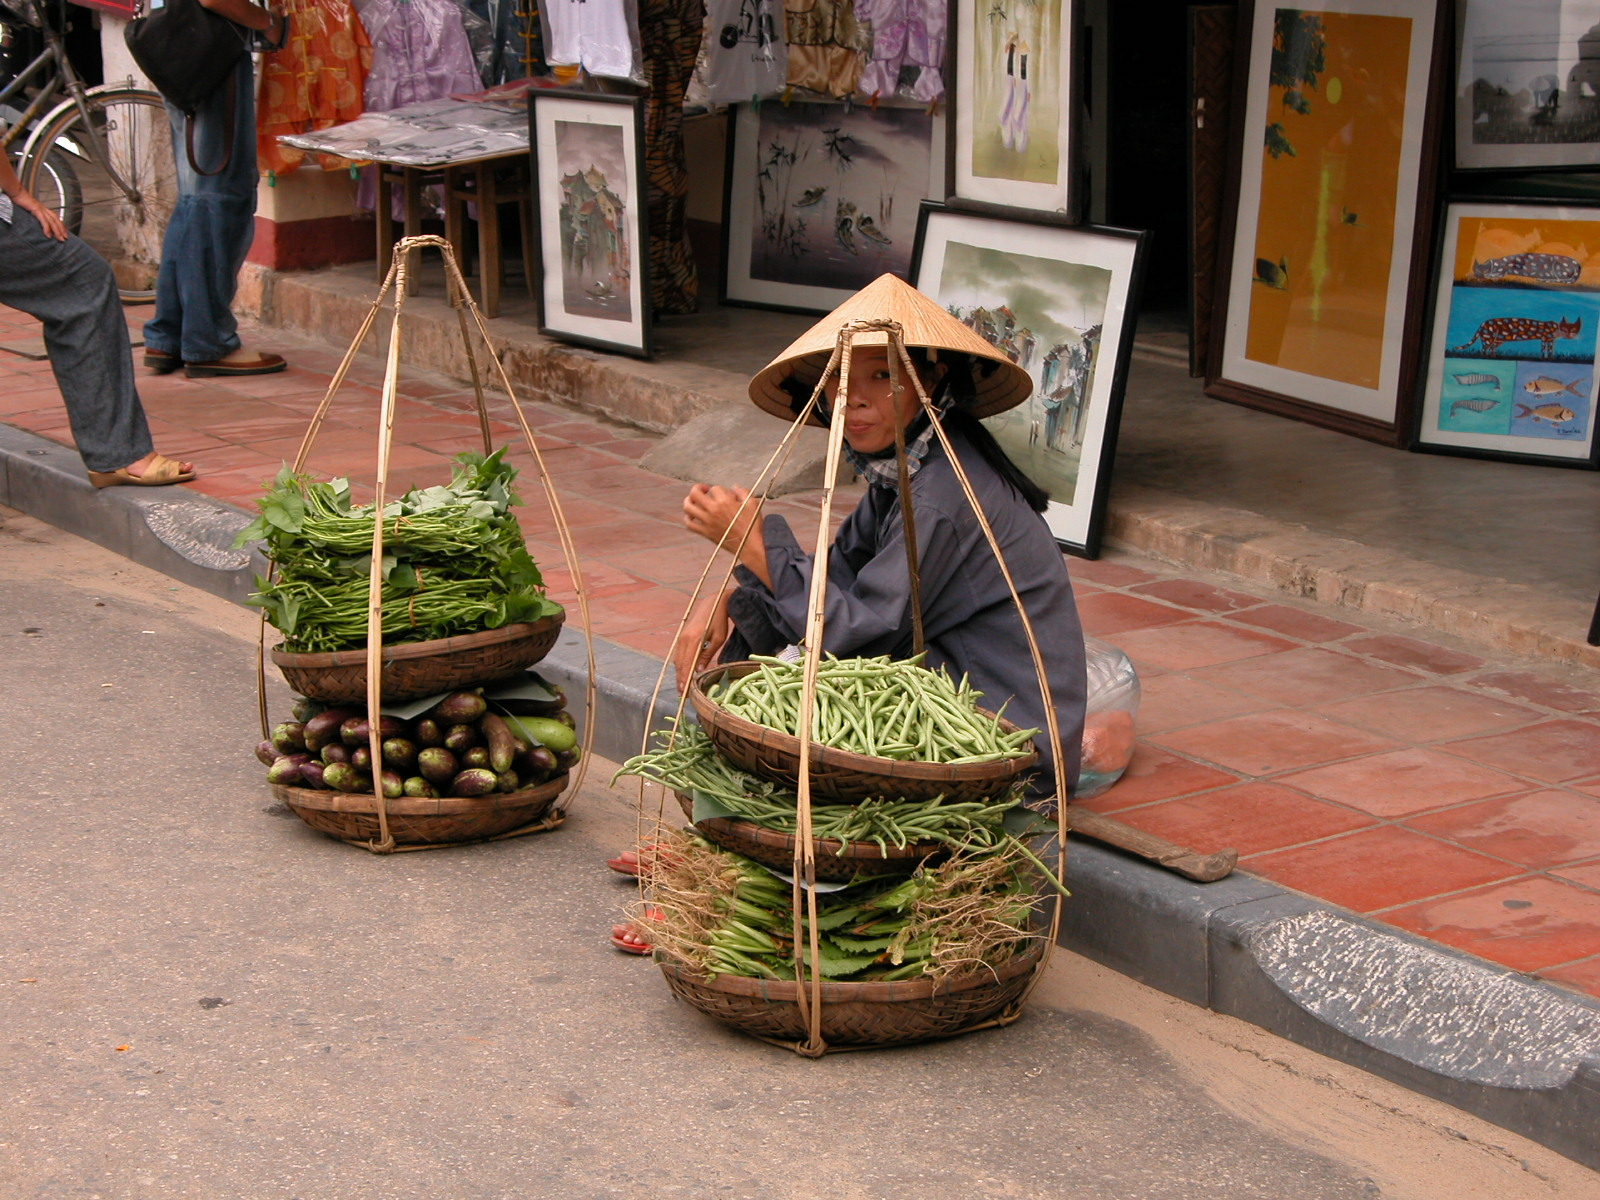 Vietnam, straatbeeld in Hoian